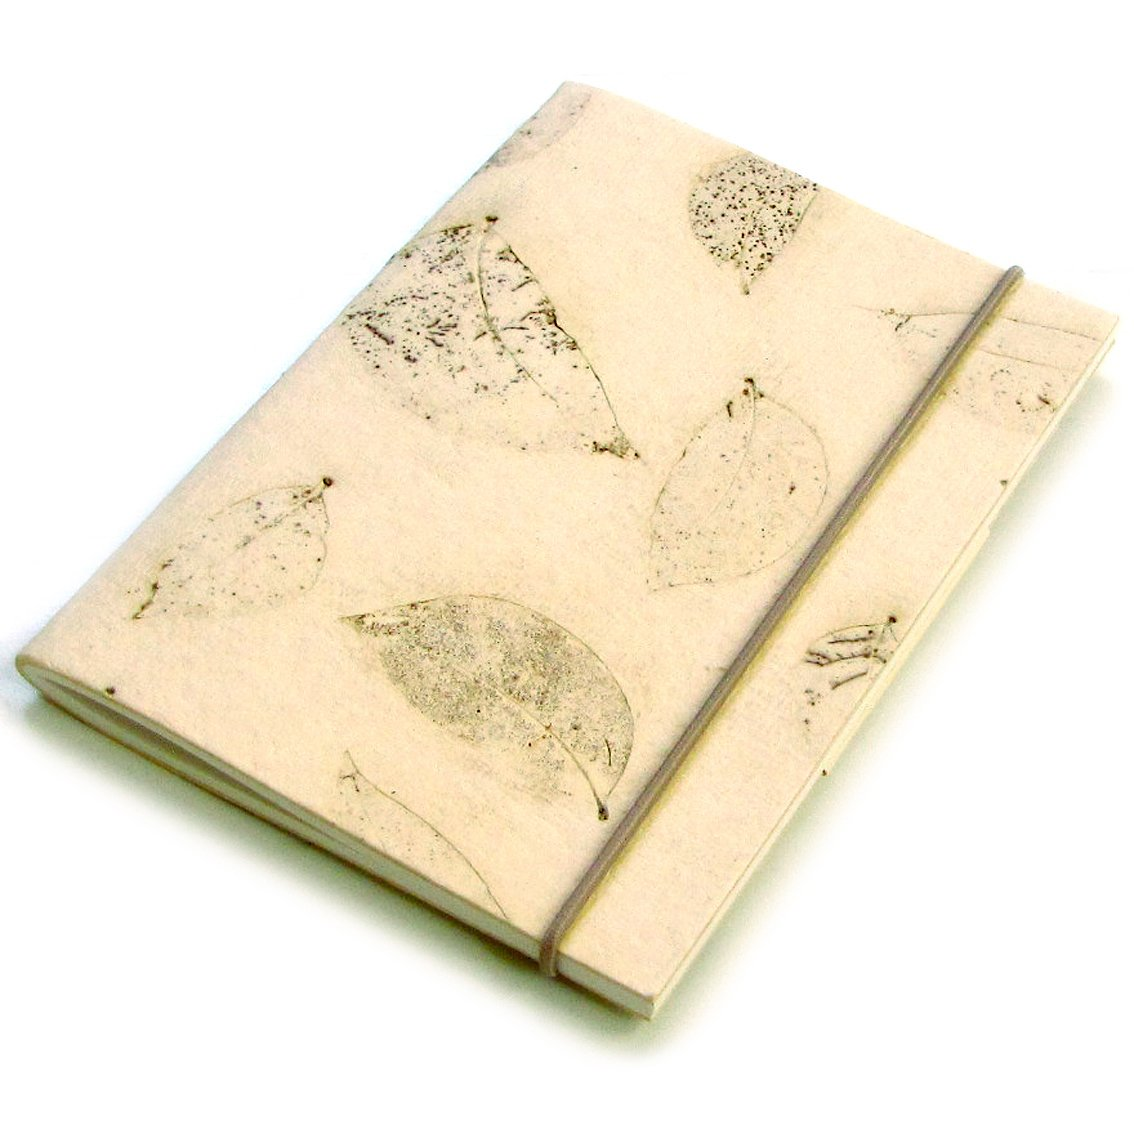 Journal handcrafted notebook recipes diary 5x7 40pp blank cream small leaf handmade paper craft